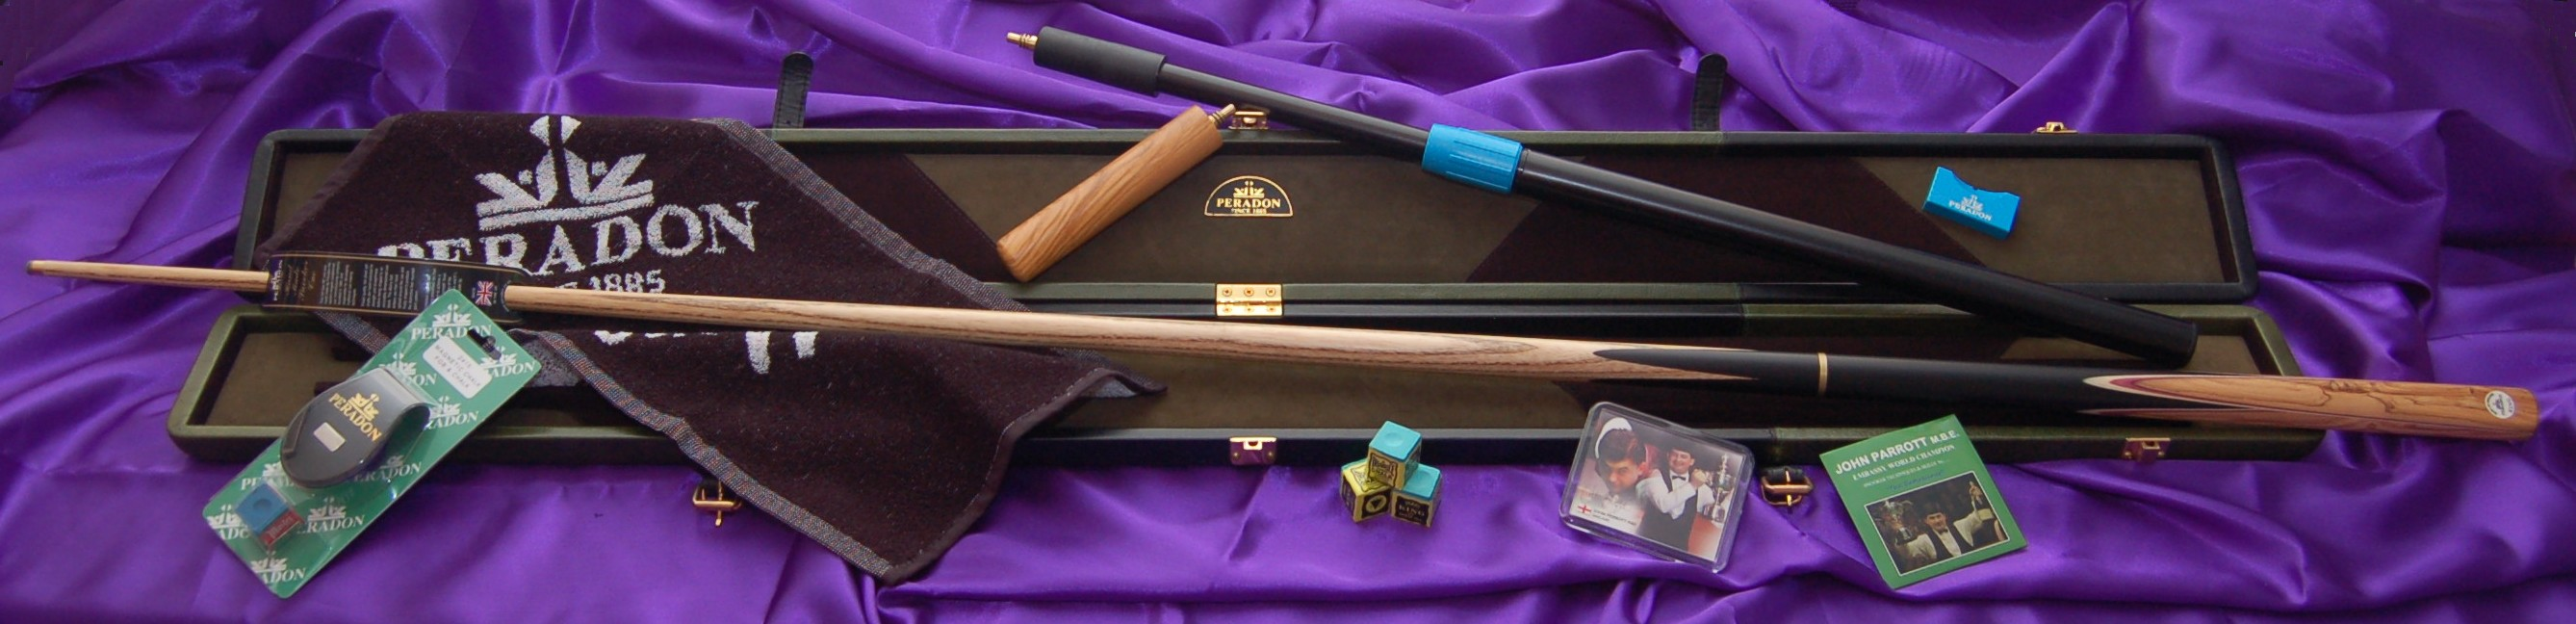 Snooker Cues Cases And Snooker Accessories John Parrott